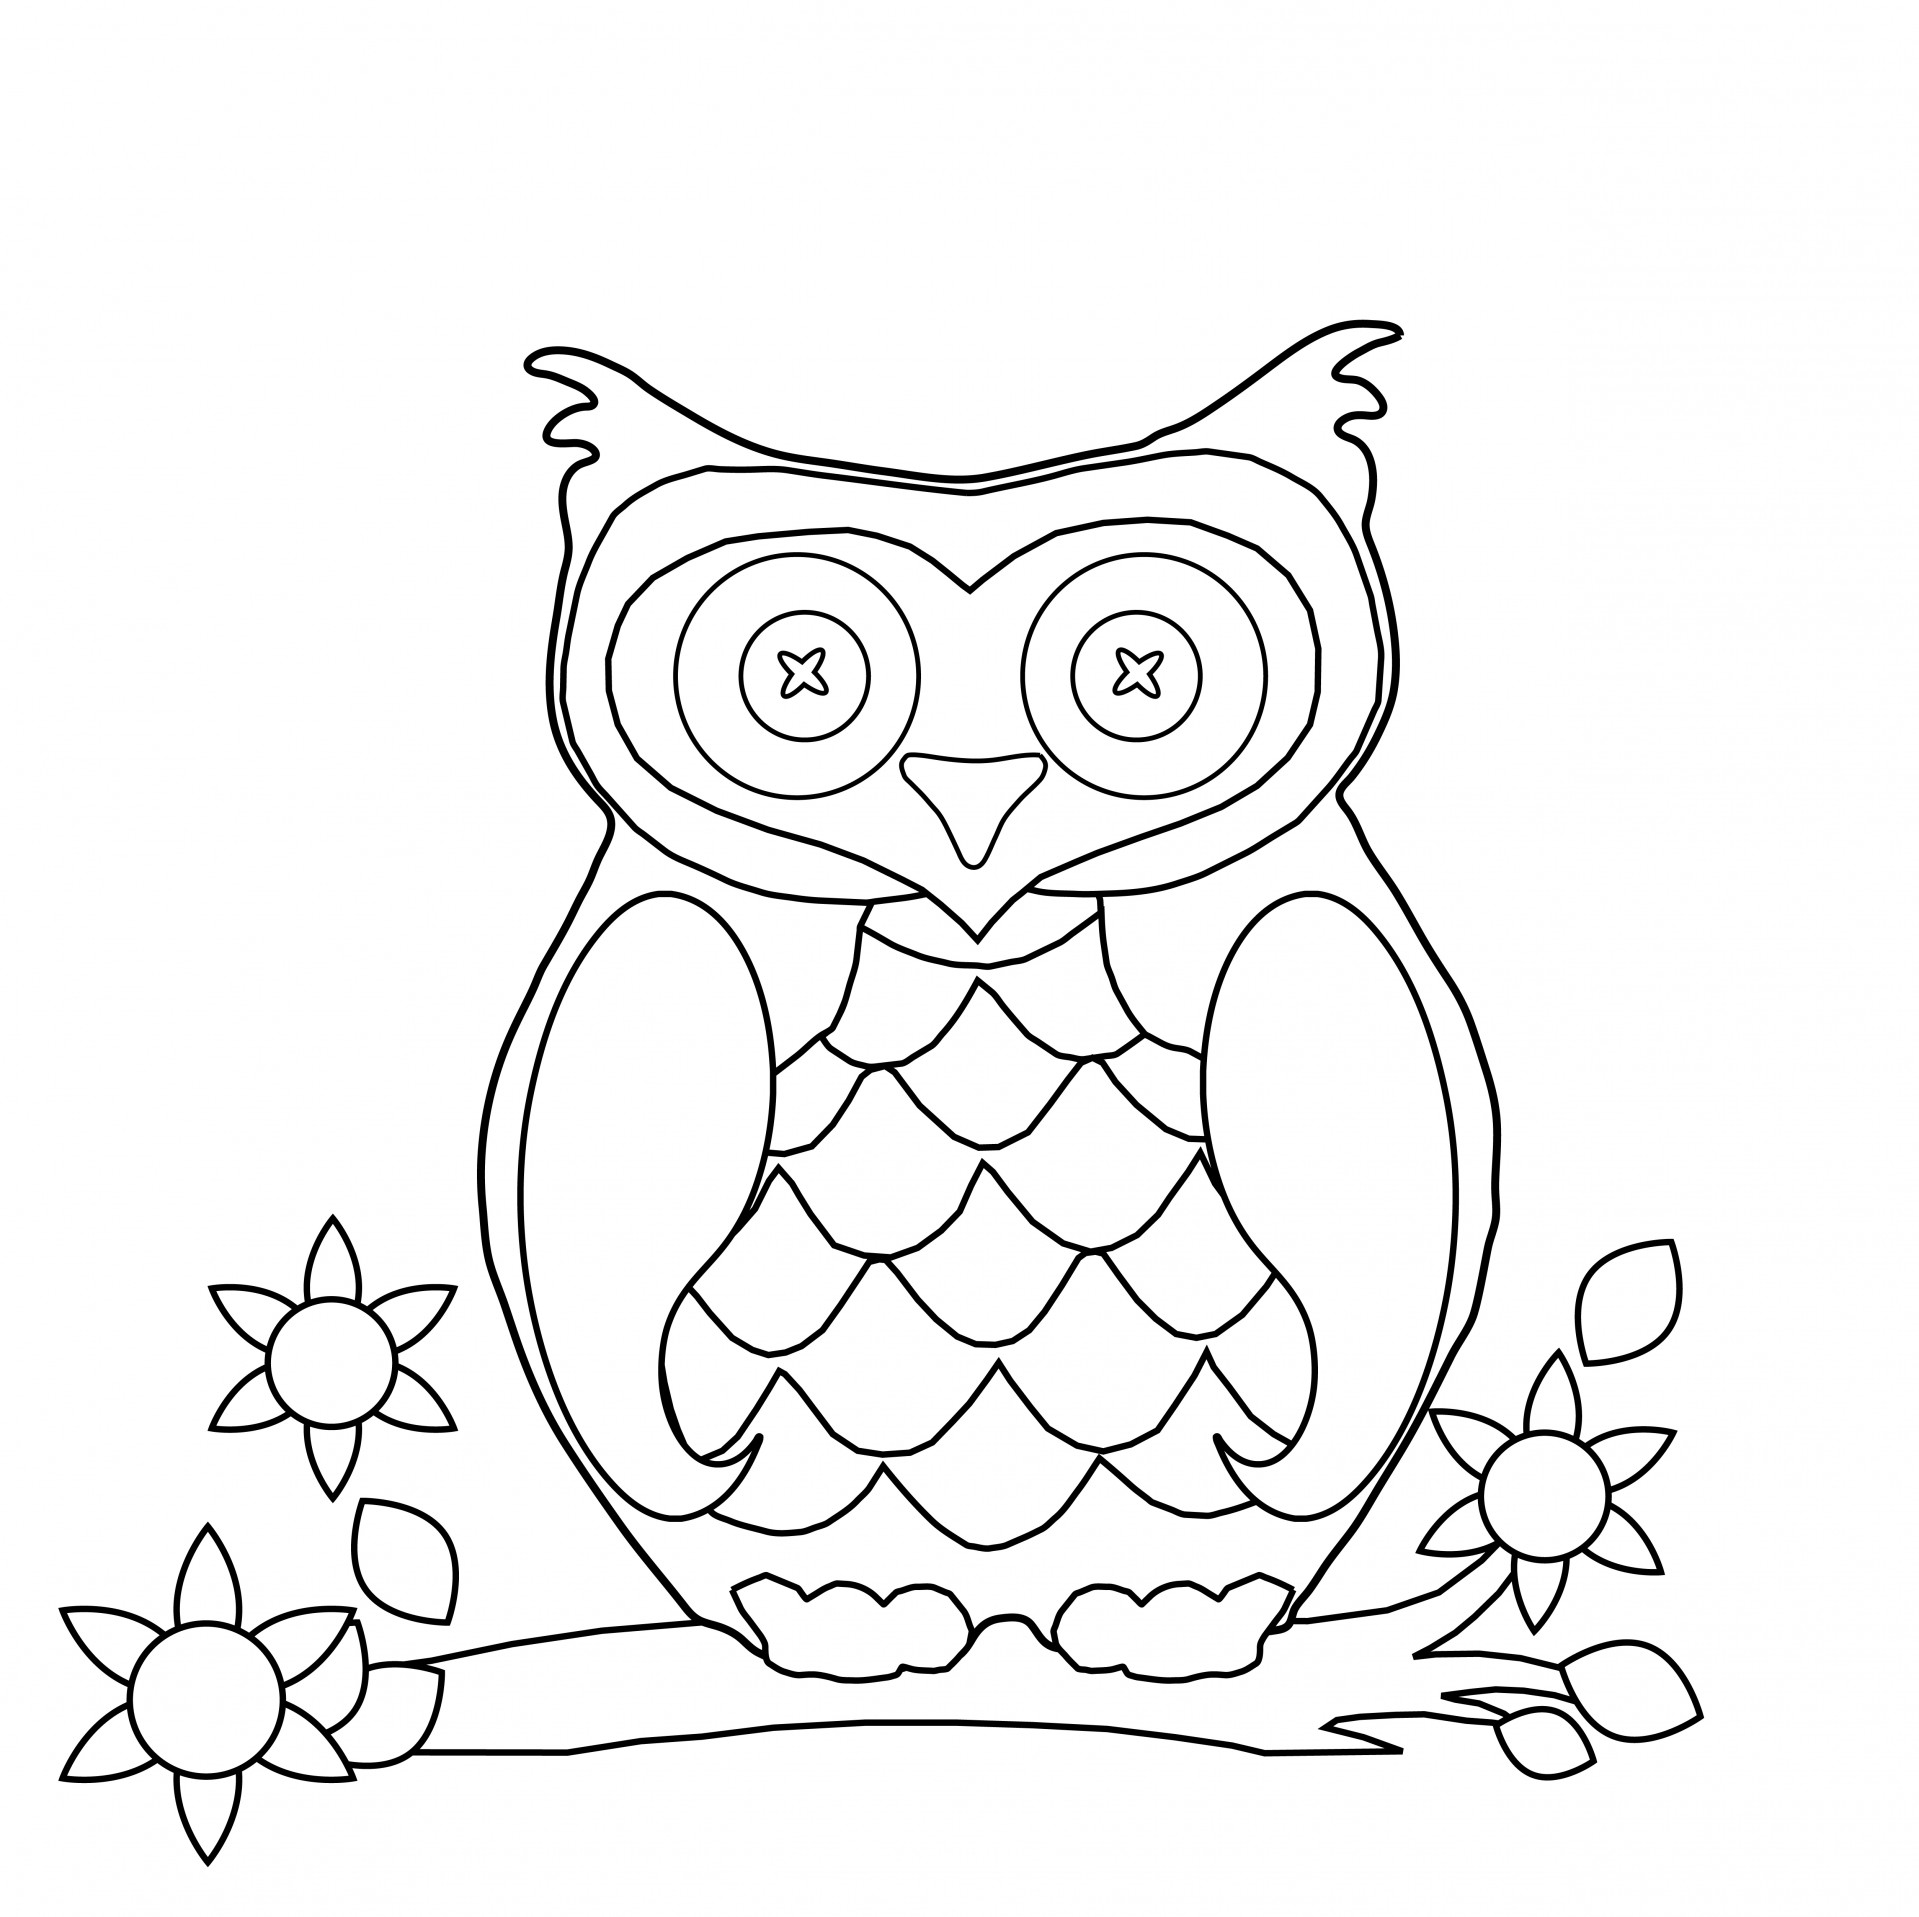 Coloring Page Images.